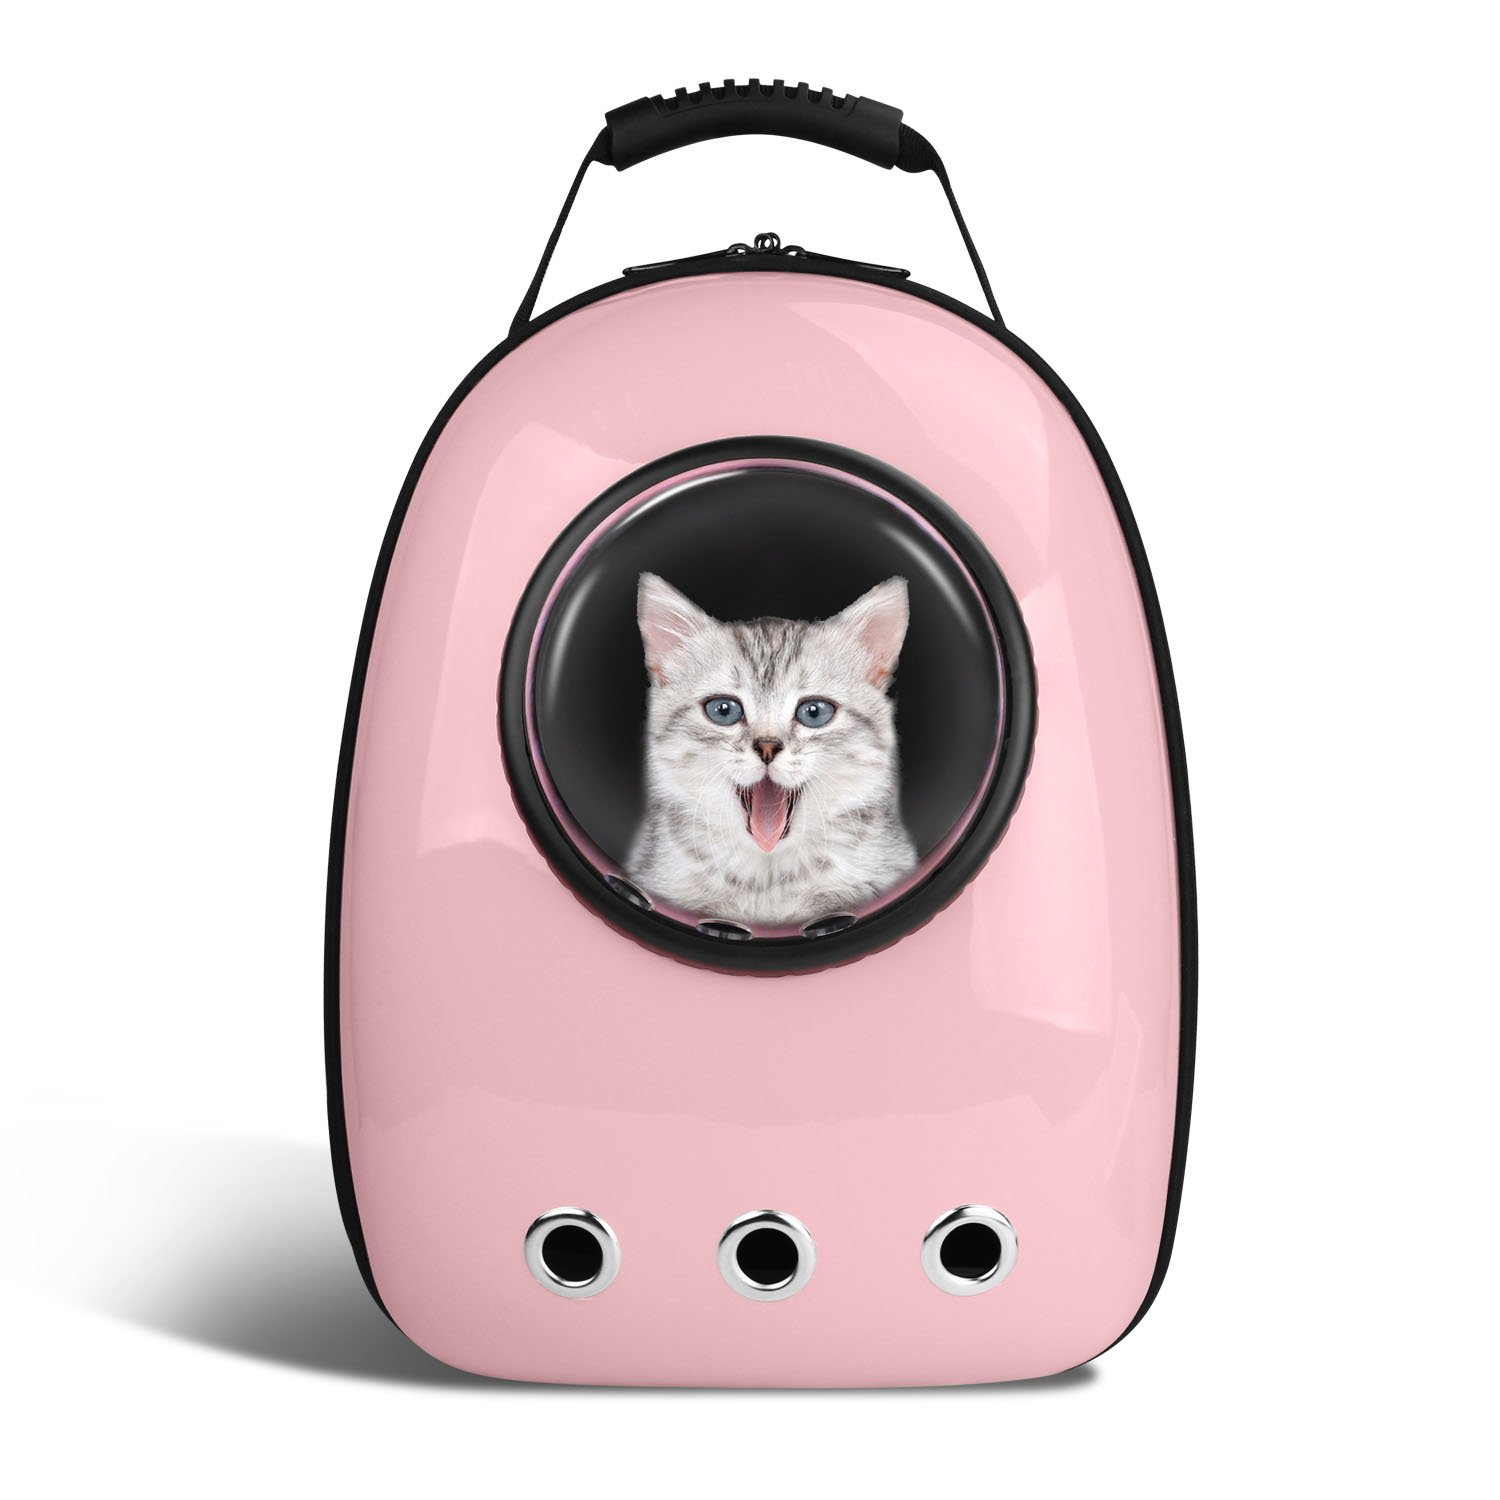 Blitzwolf Pet Portable Carrier Space Capsule Backpack, Pet Bubble Traveler Knapsack Multiple Air Vents Waterproof Lightweight Handbag for Cats Small Dogs Petite Animals